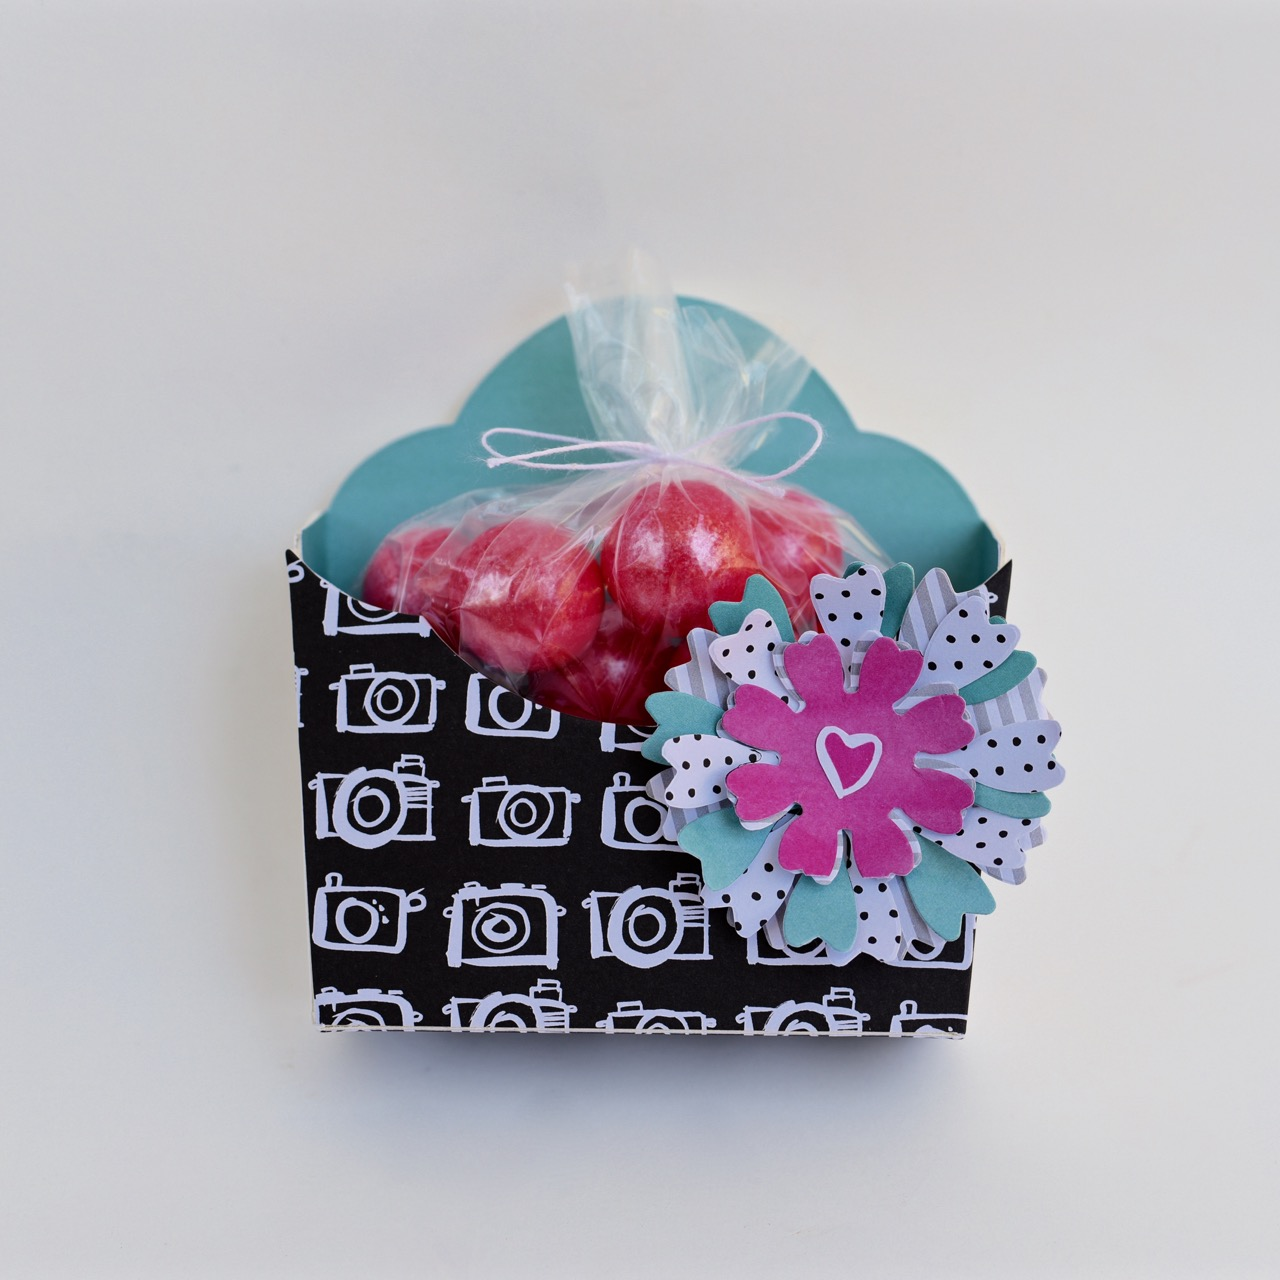 Flower Treat Box: A Great Gift for a Friend!